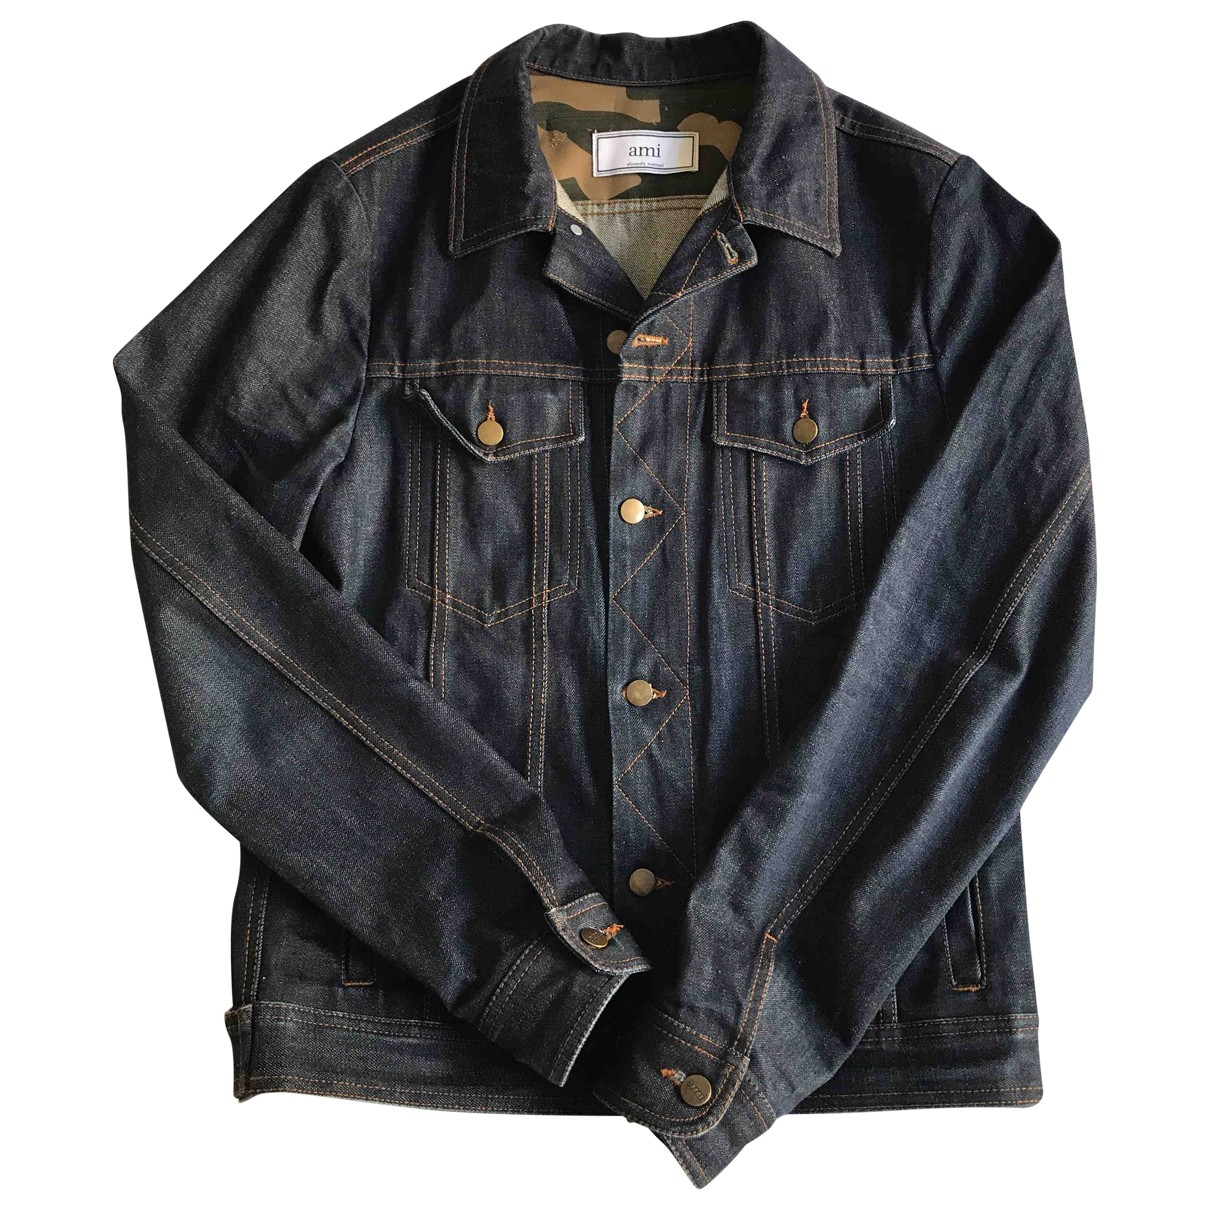 Ami \N Blue Denim - Jeans jacket  for Men M International